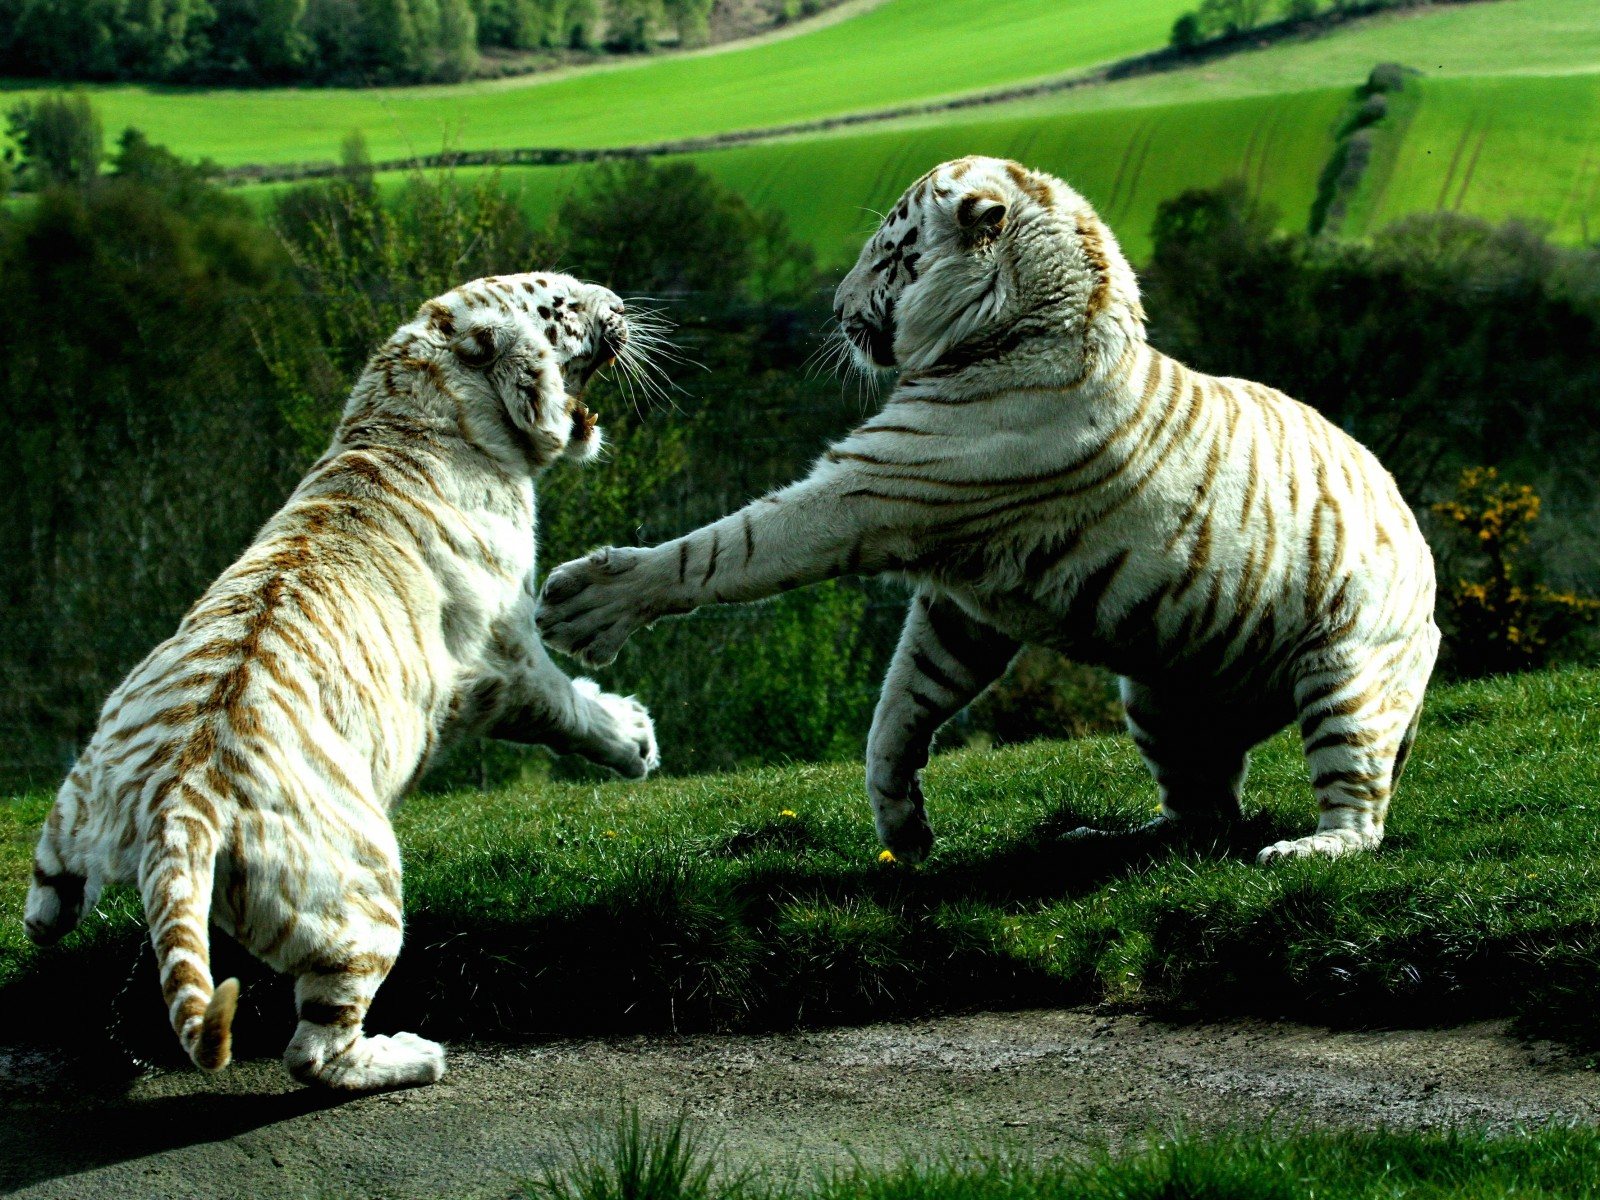 White Tigers Fighting Wallpaper for Desktop 1600x1200